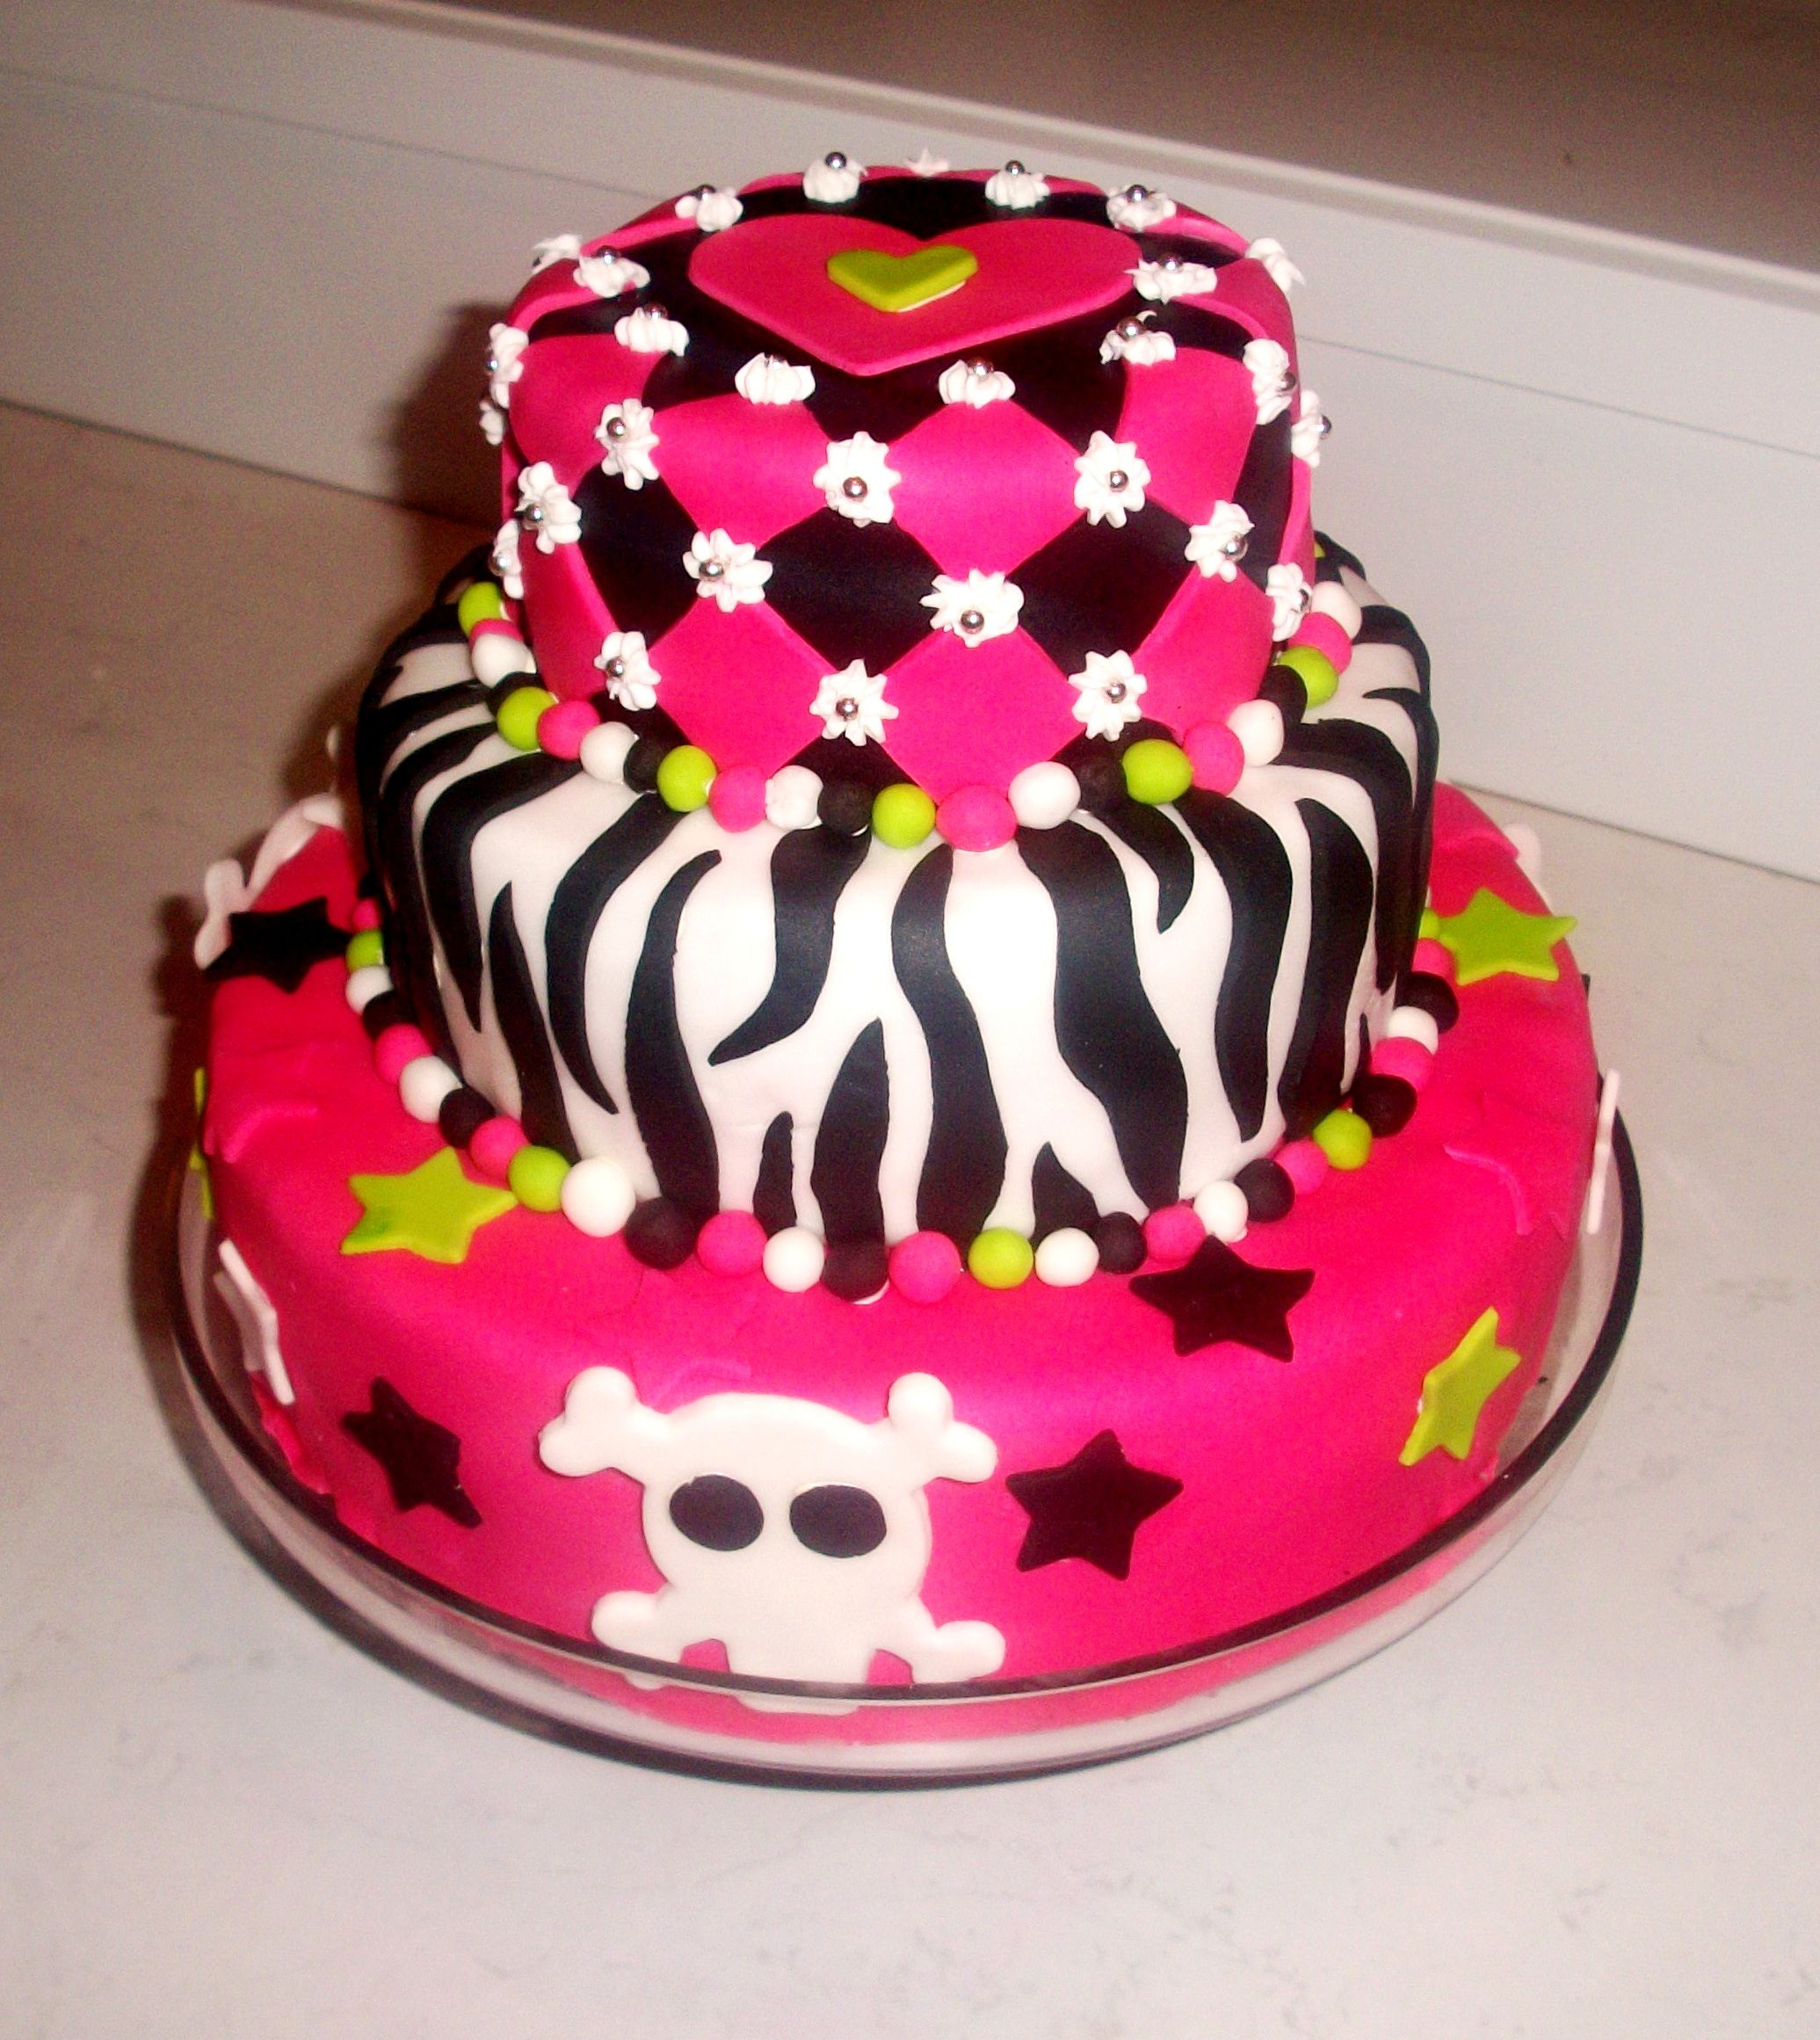 Idea For First Birthday Cake. Theme-Punk Princess